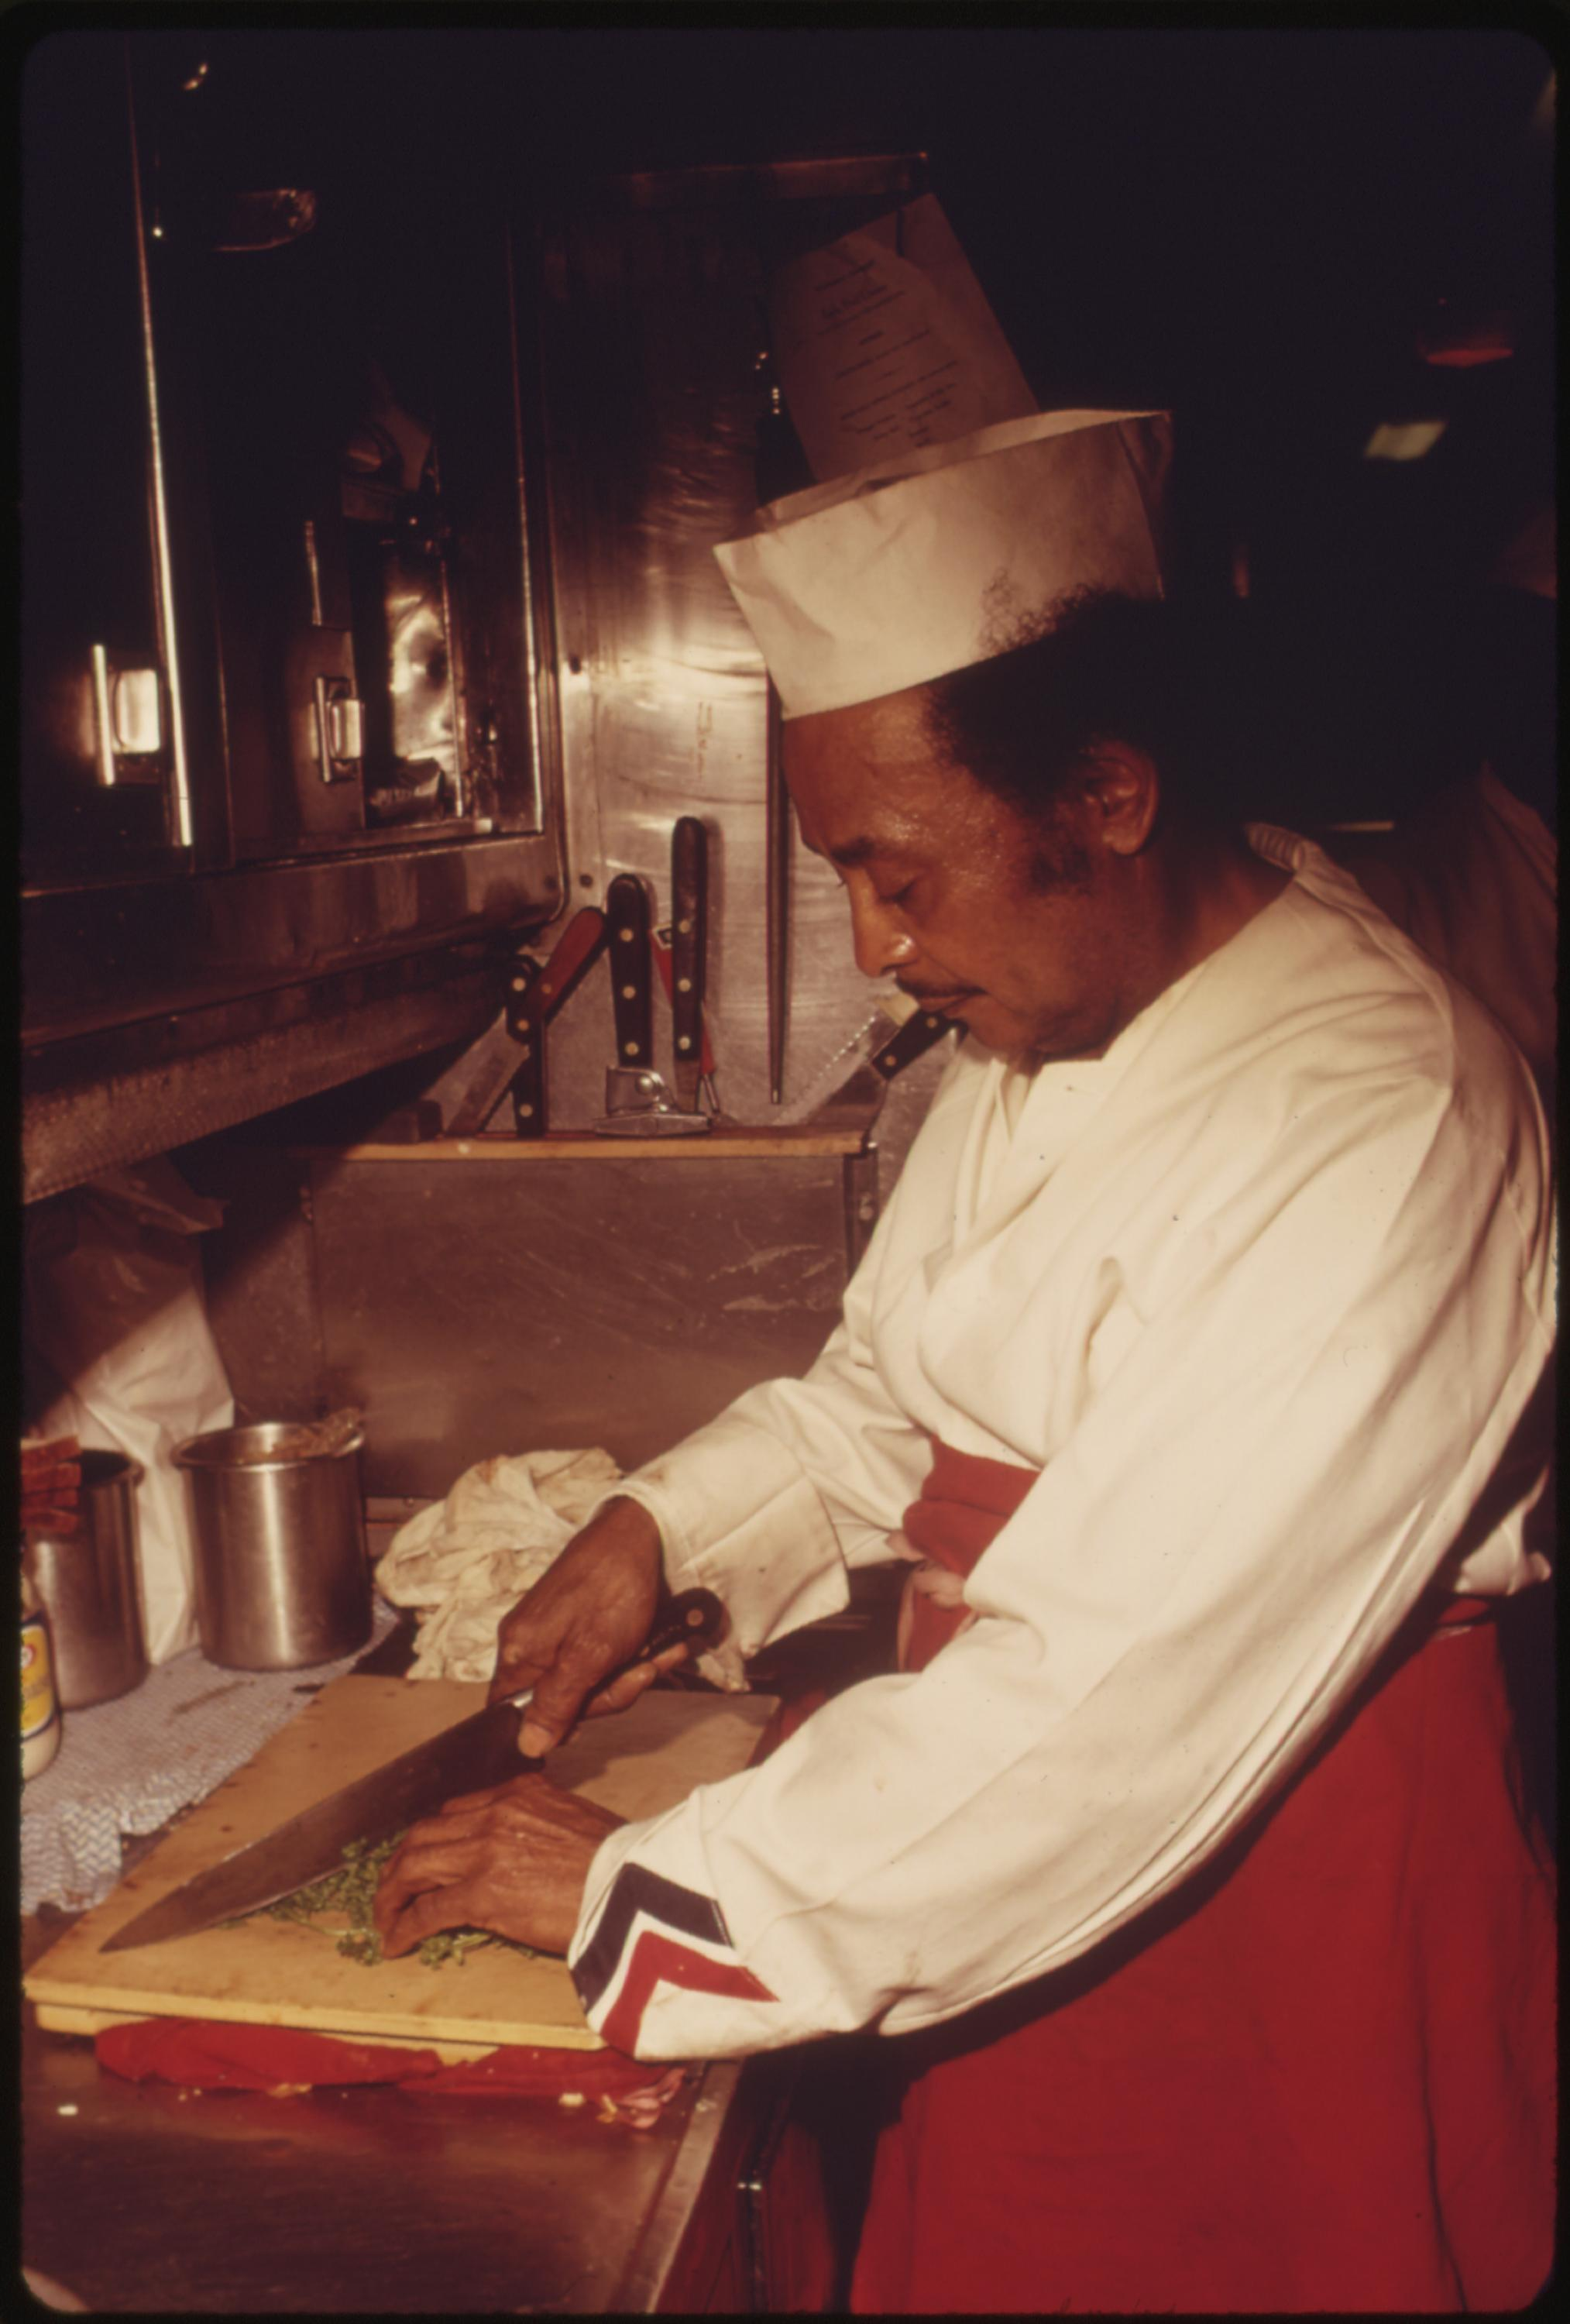 Cook in the galley of the dining car on Amtrak's Southwest Limited, June 1974